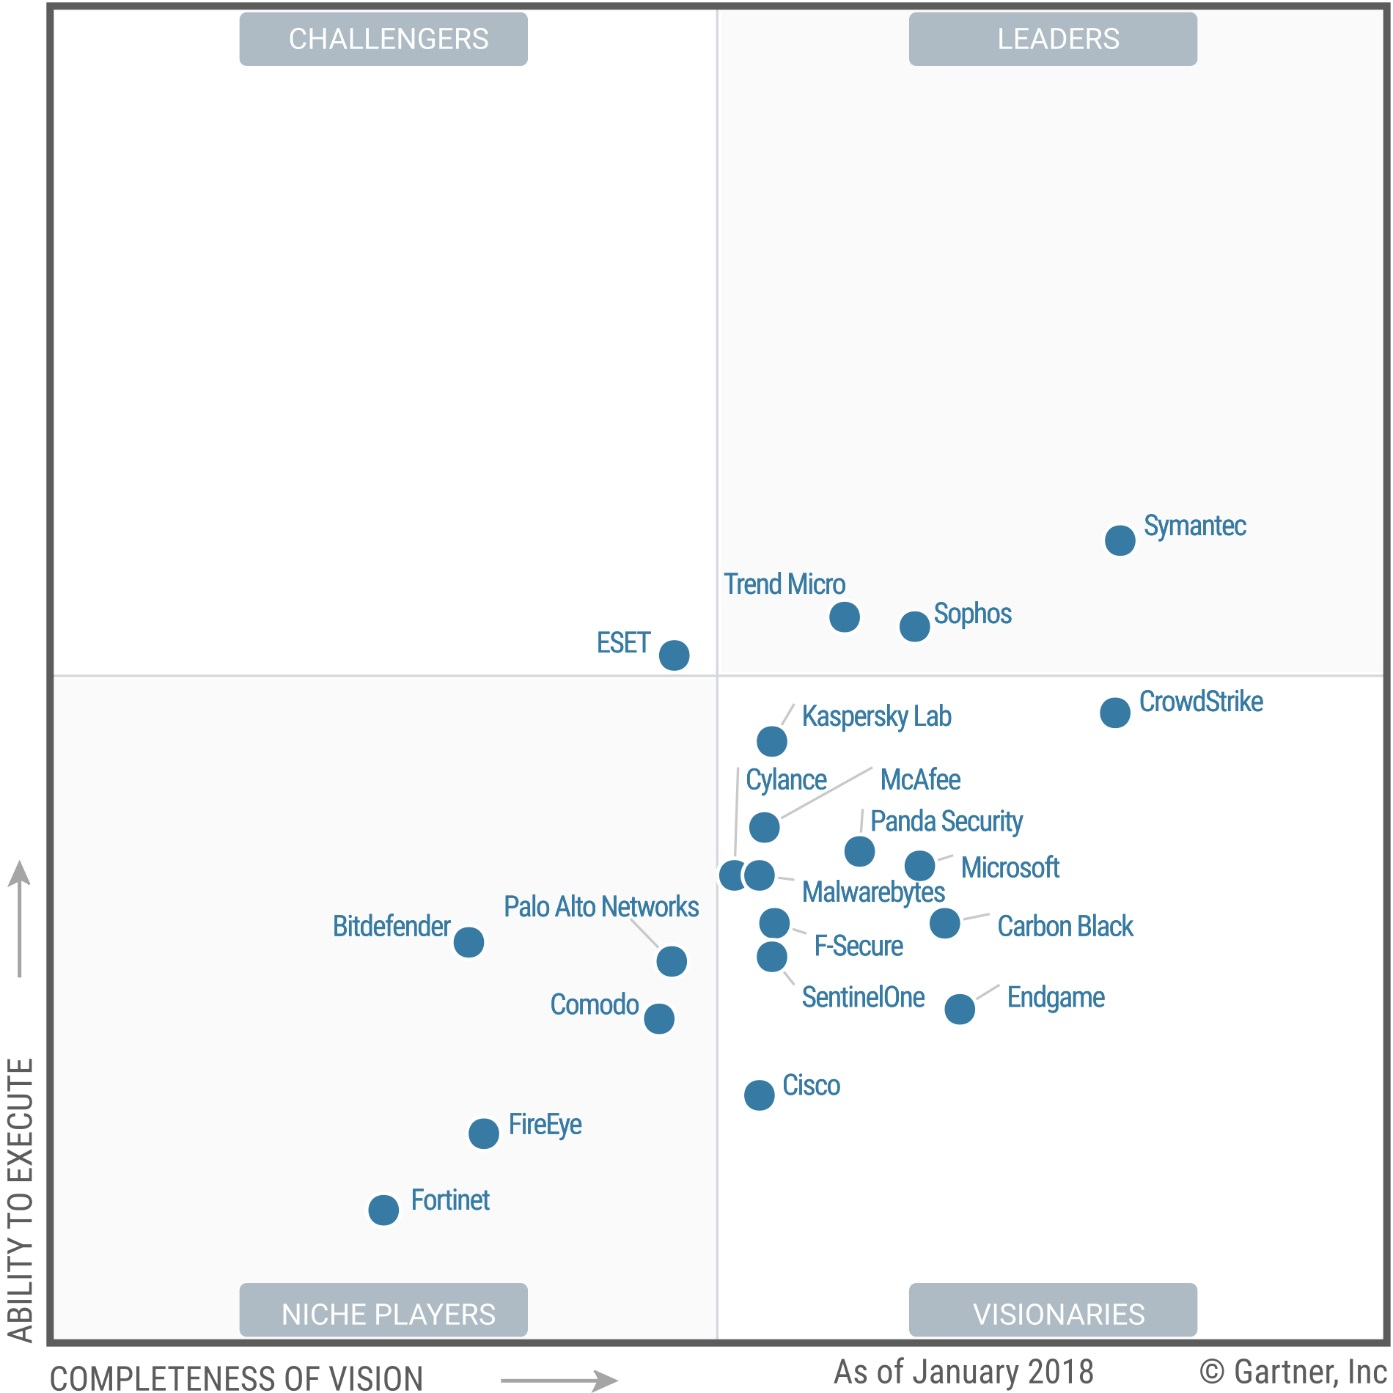 Trend Micro Recognized Again As A Leader In Gartner Magic